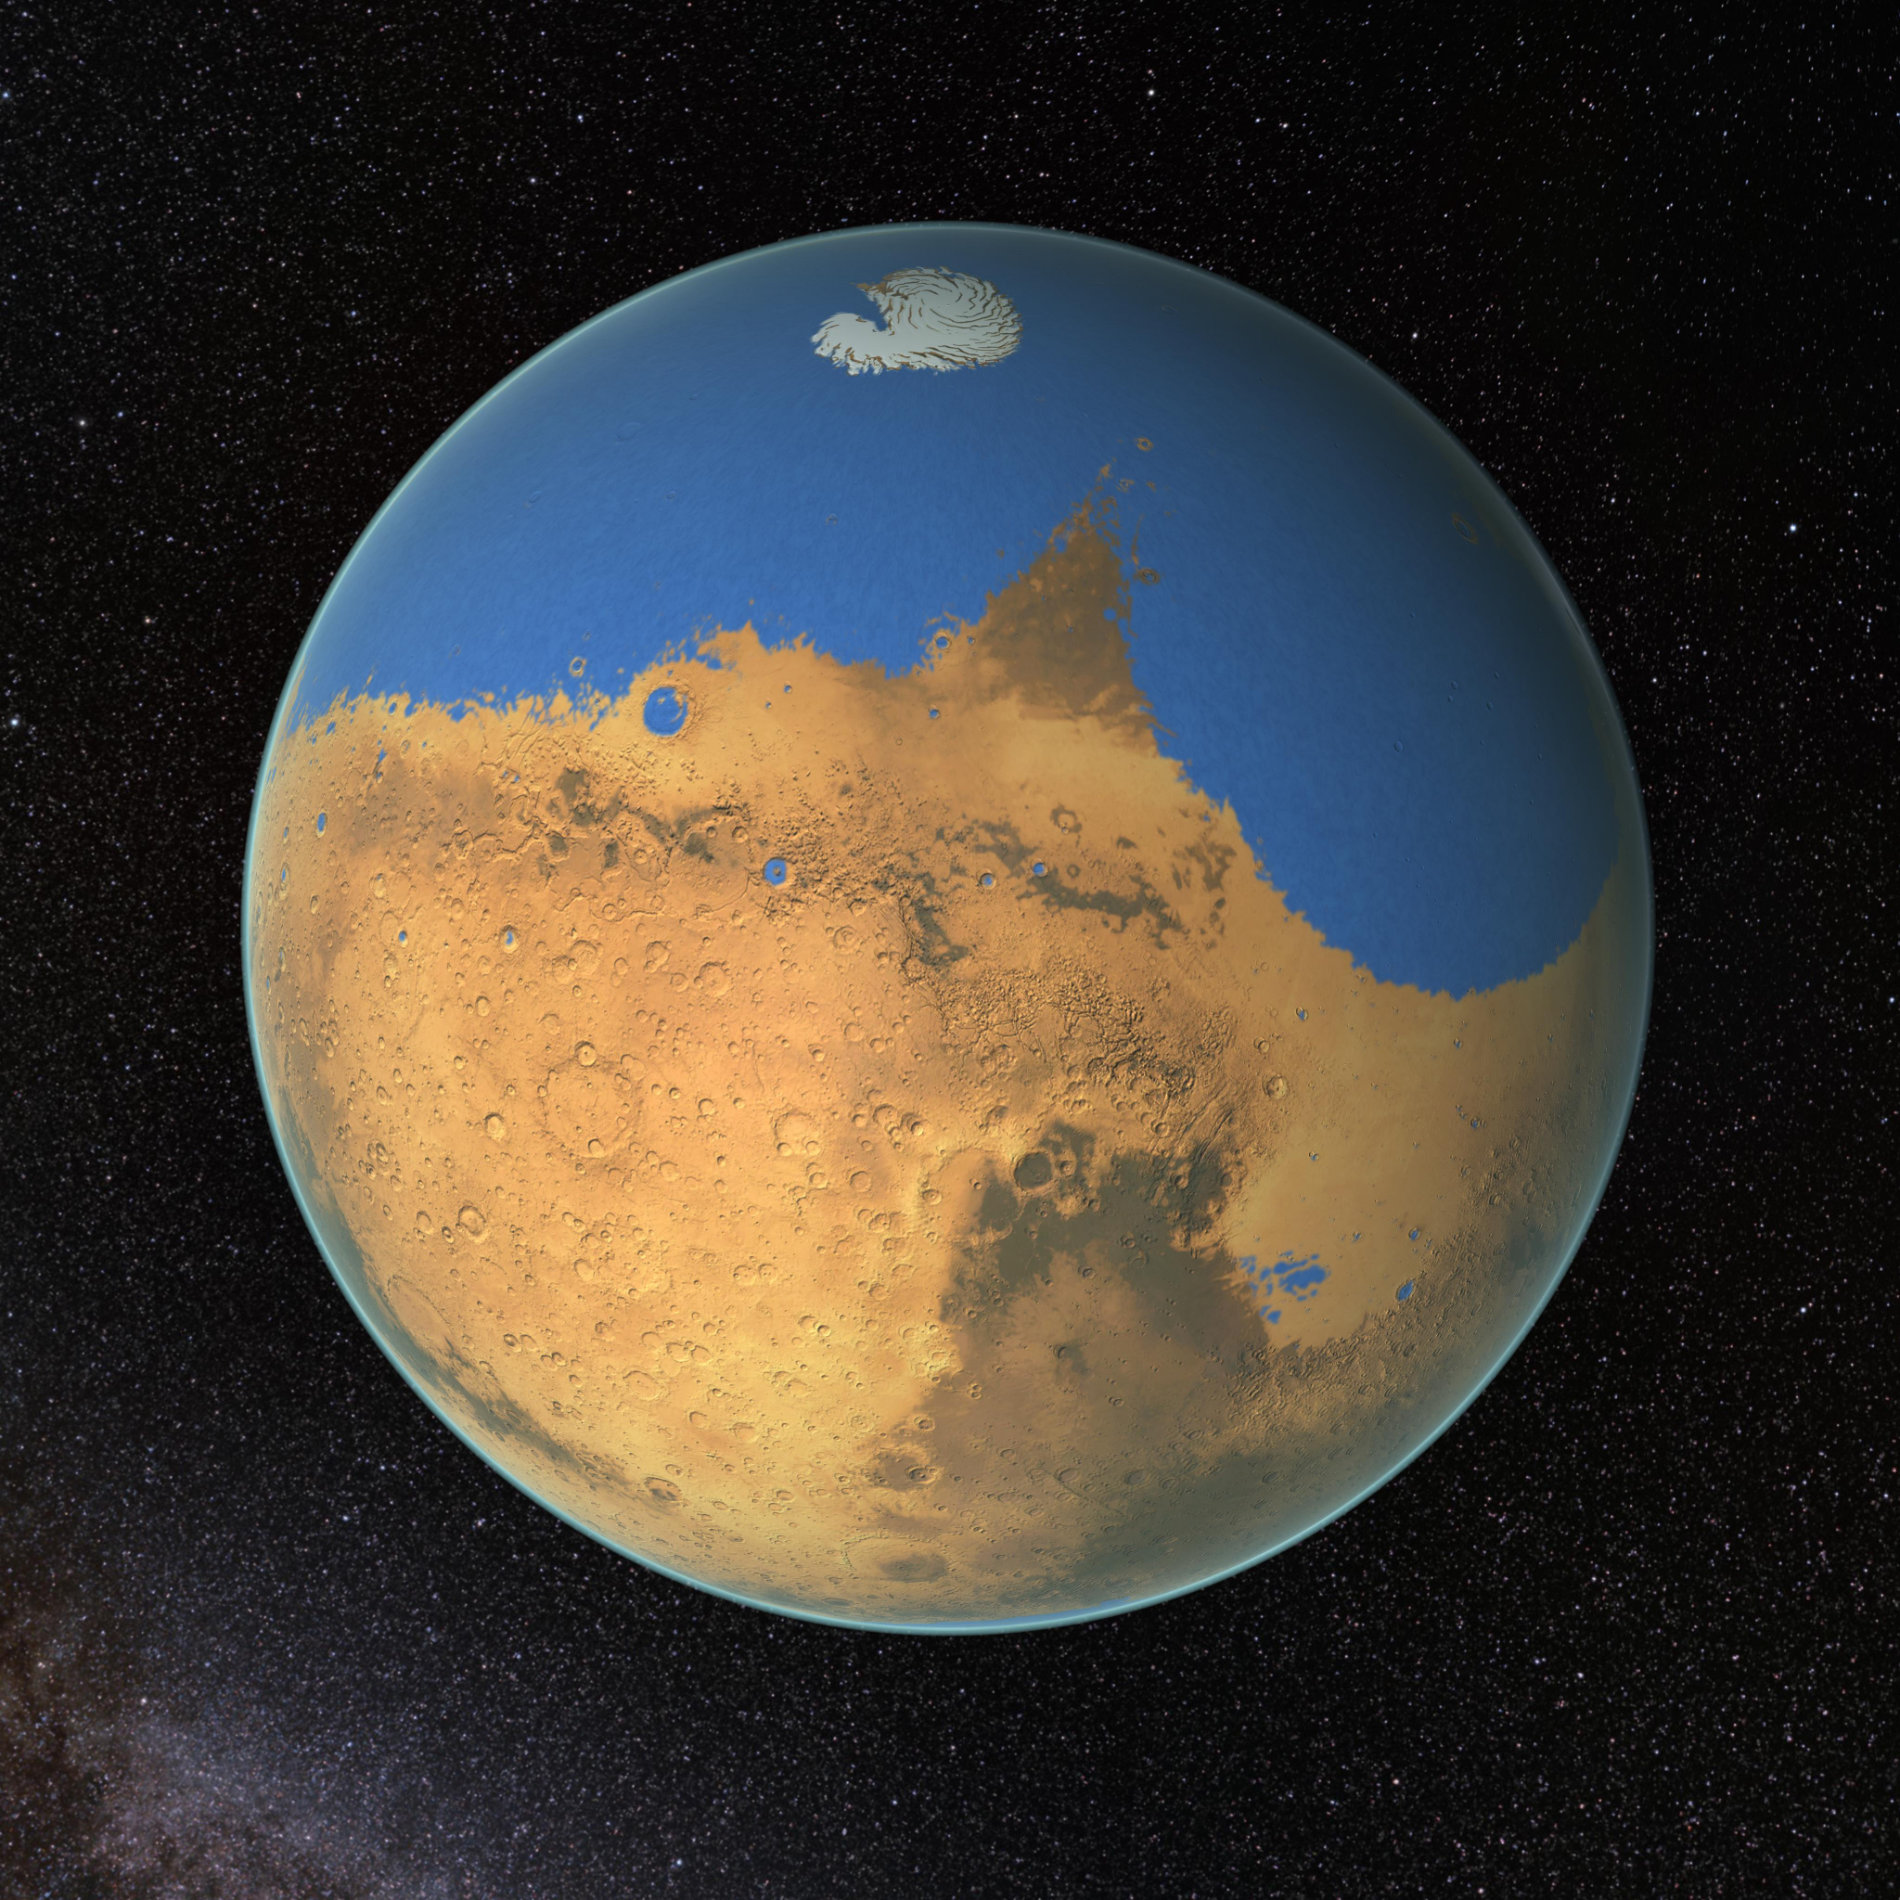 A primitive ocean on Mars proposed by NASA scientists